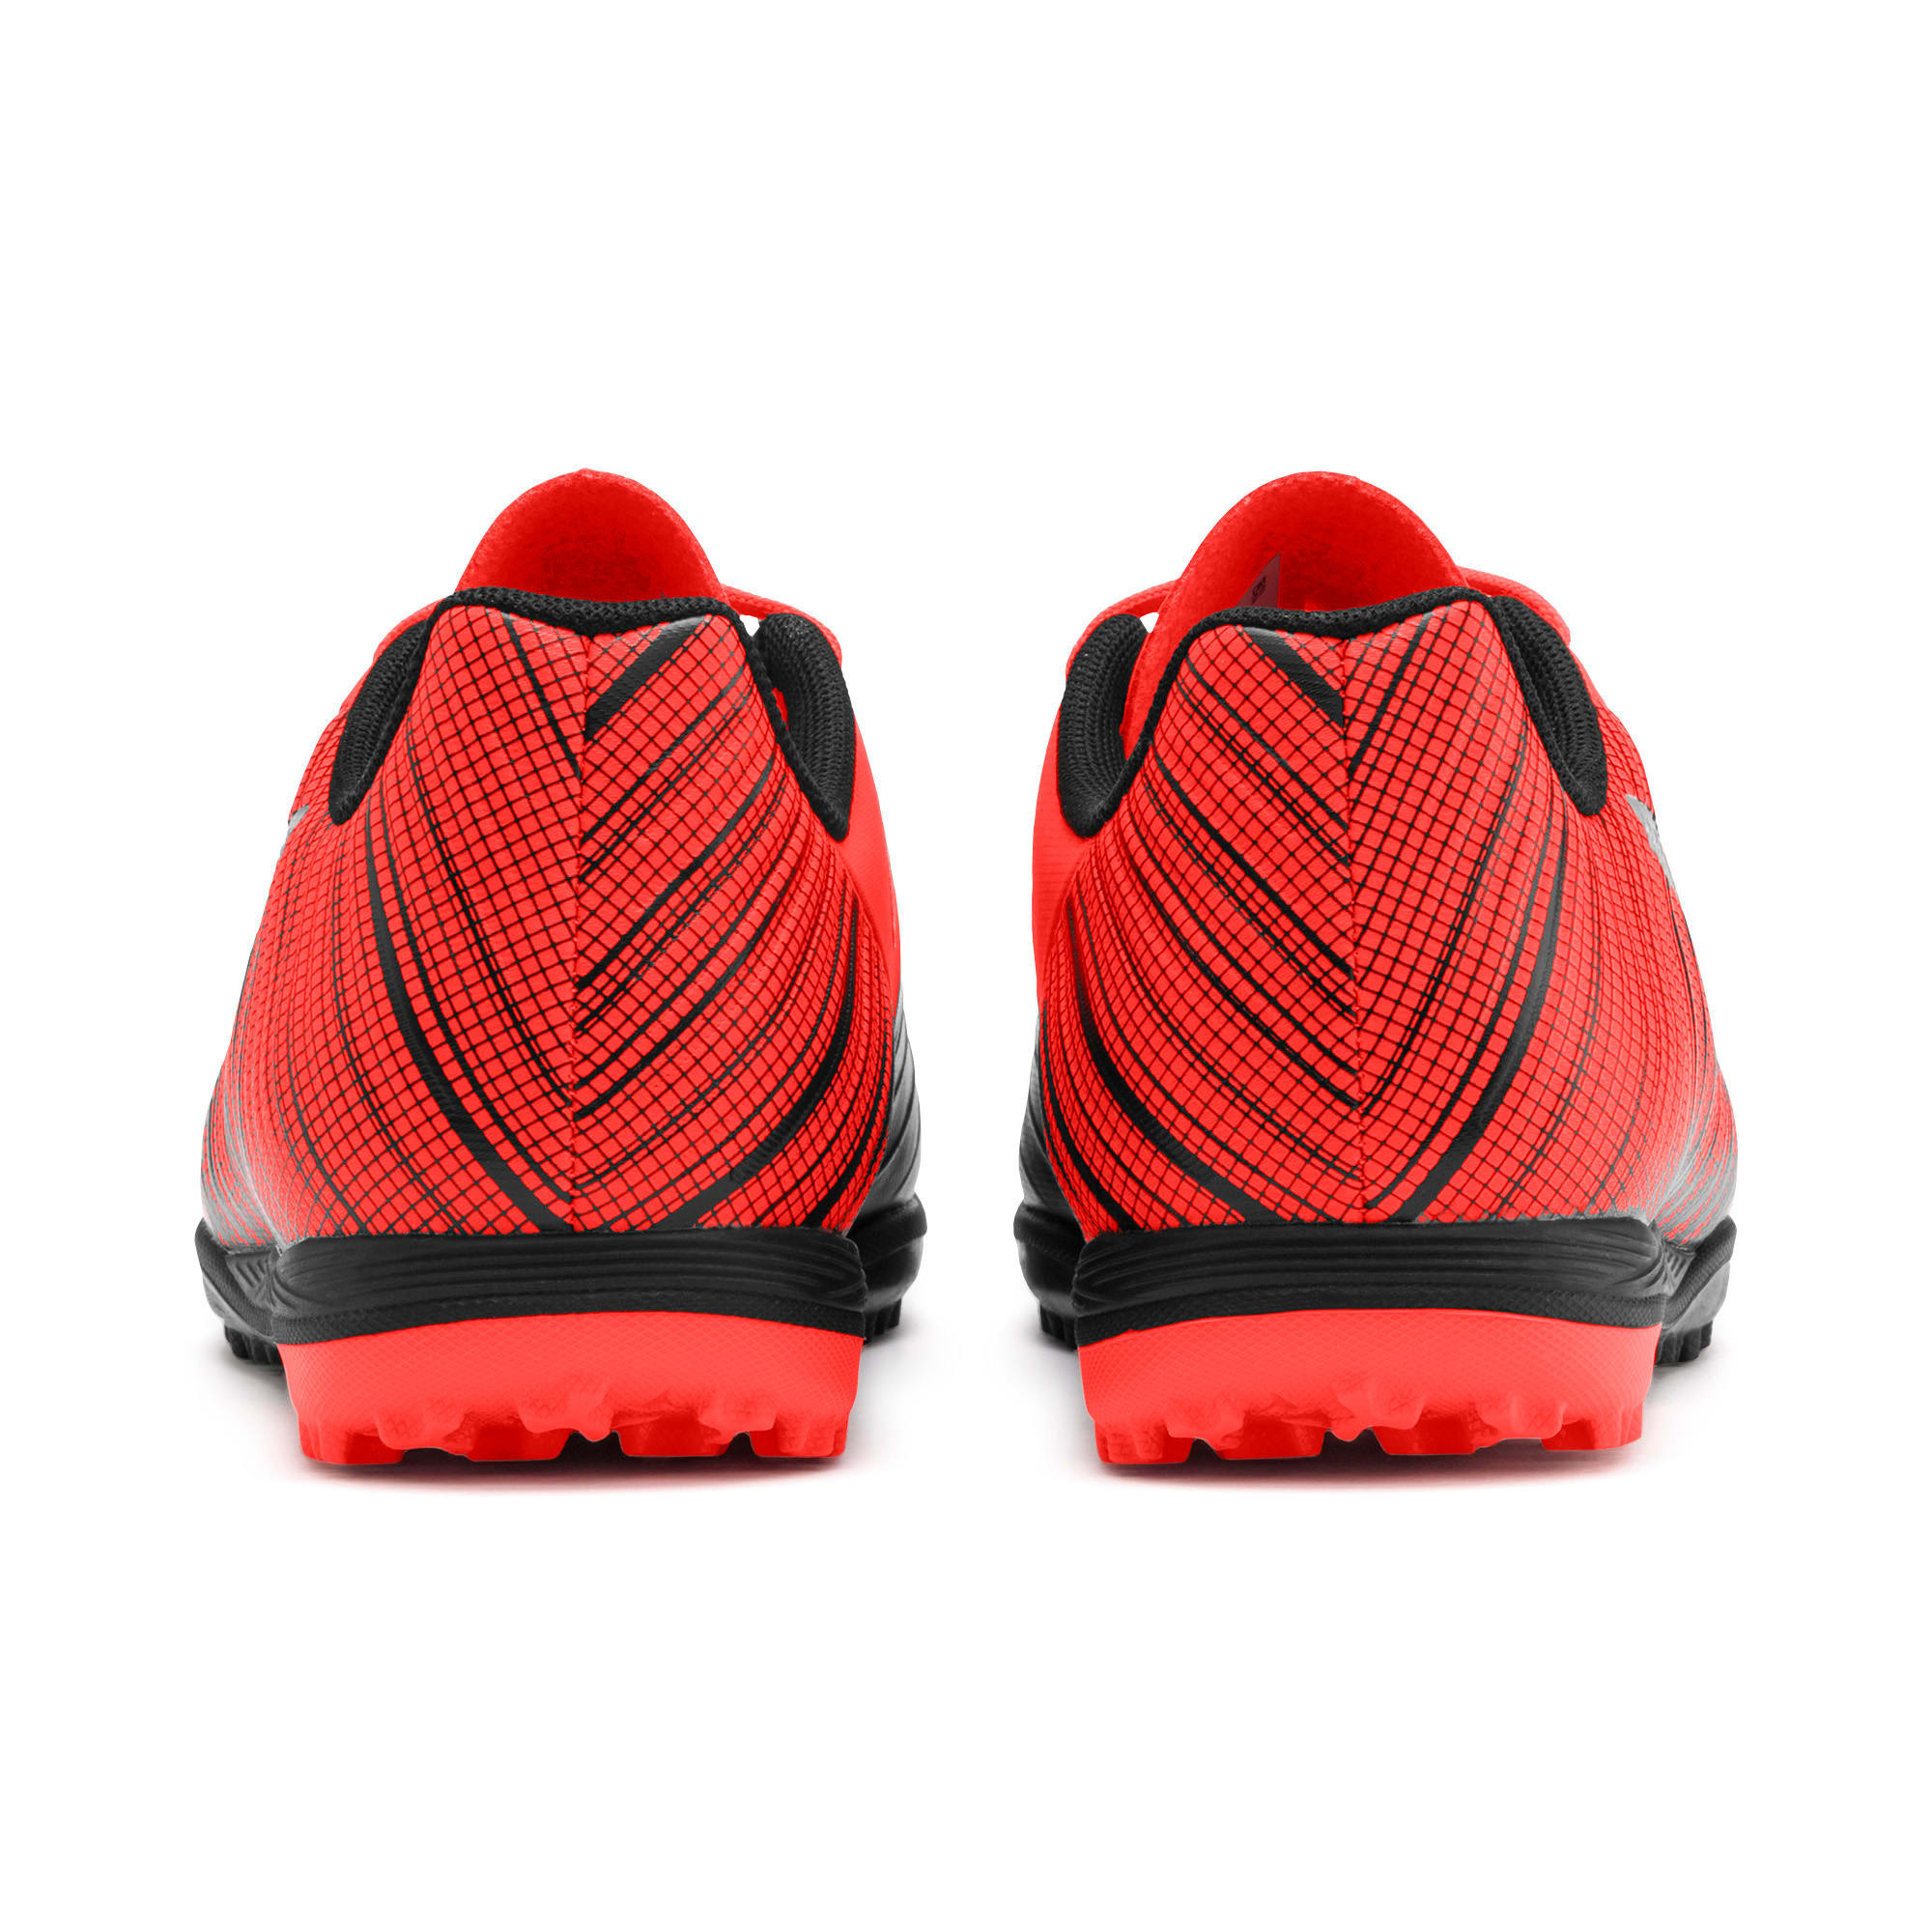 Thumbnail 3 of PUMA ONE 5.4 TT Youth Football Boots, Black-Nrgy Red-Aged Silver, medium